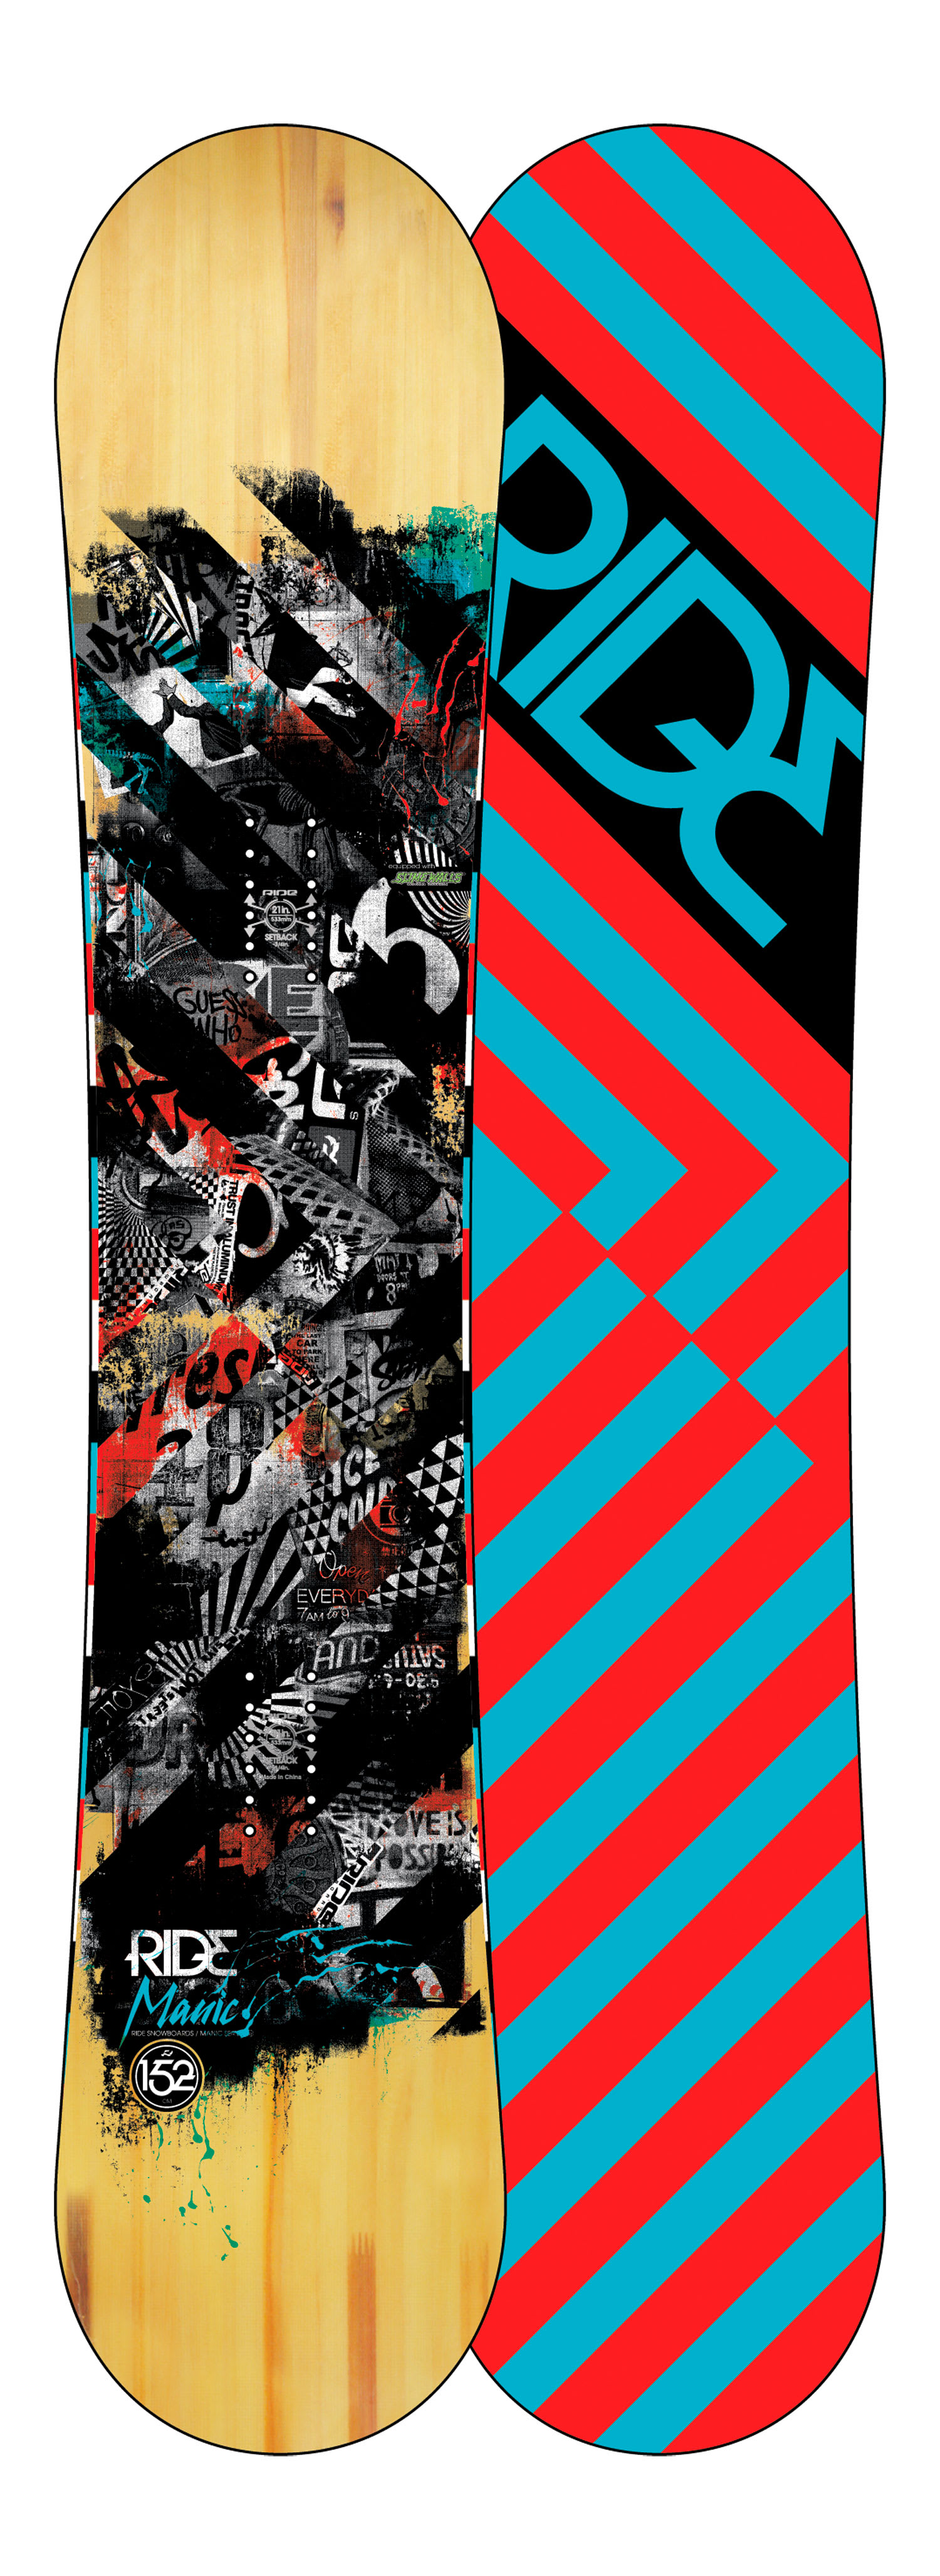 Shop for Ride Manic Snowboard 152 - Men's